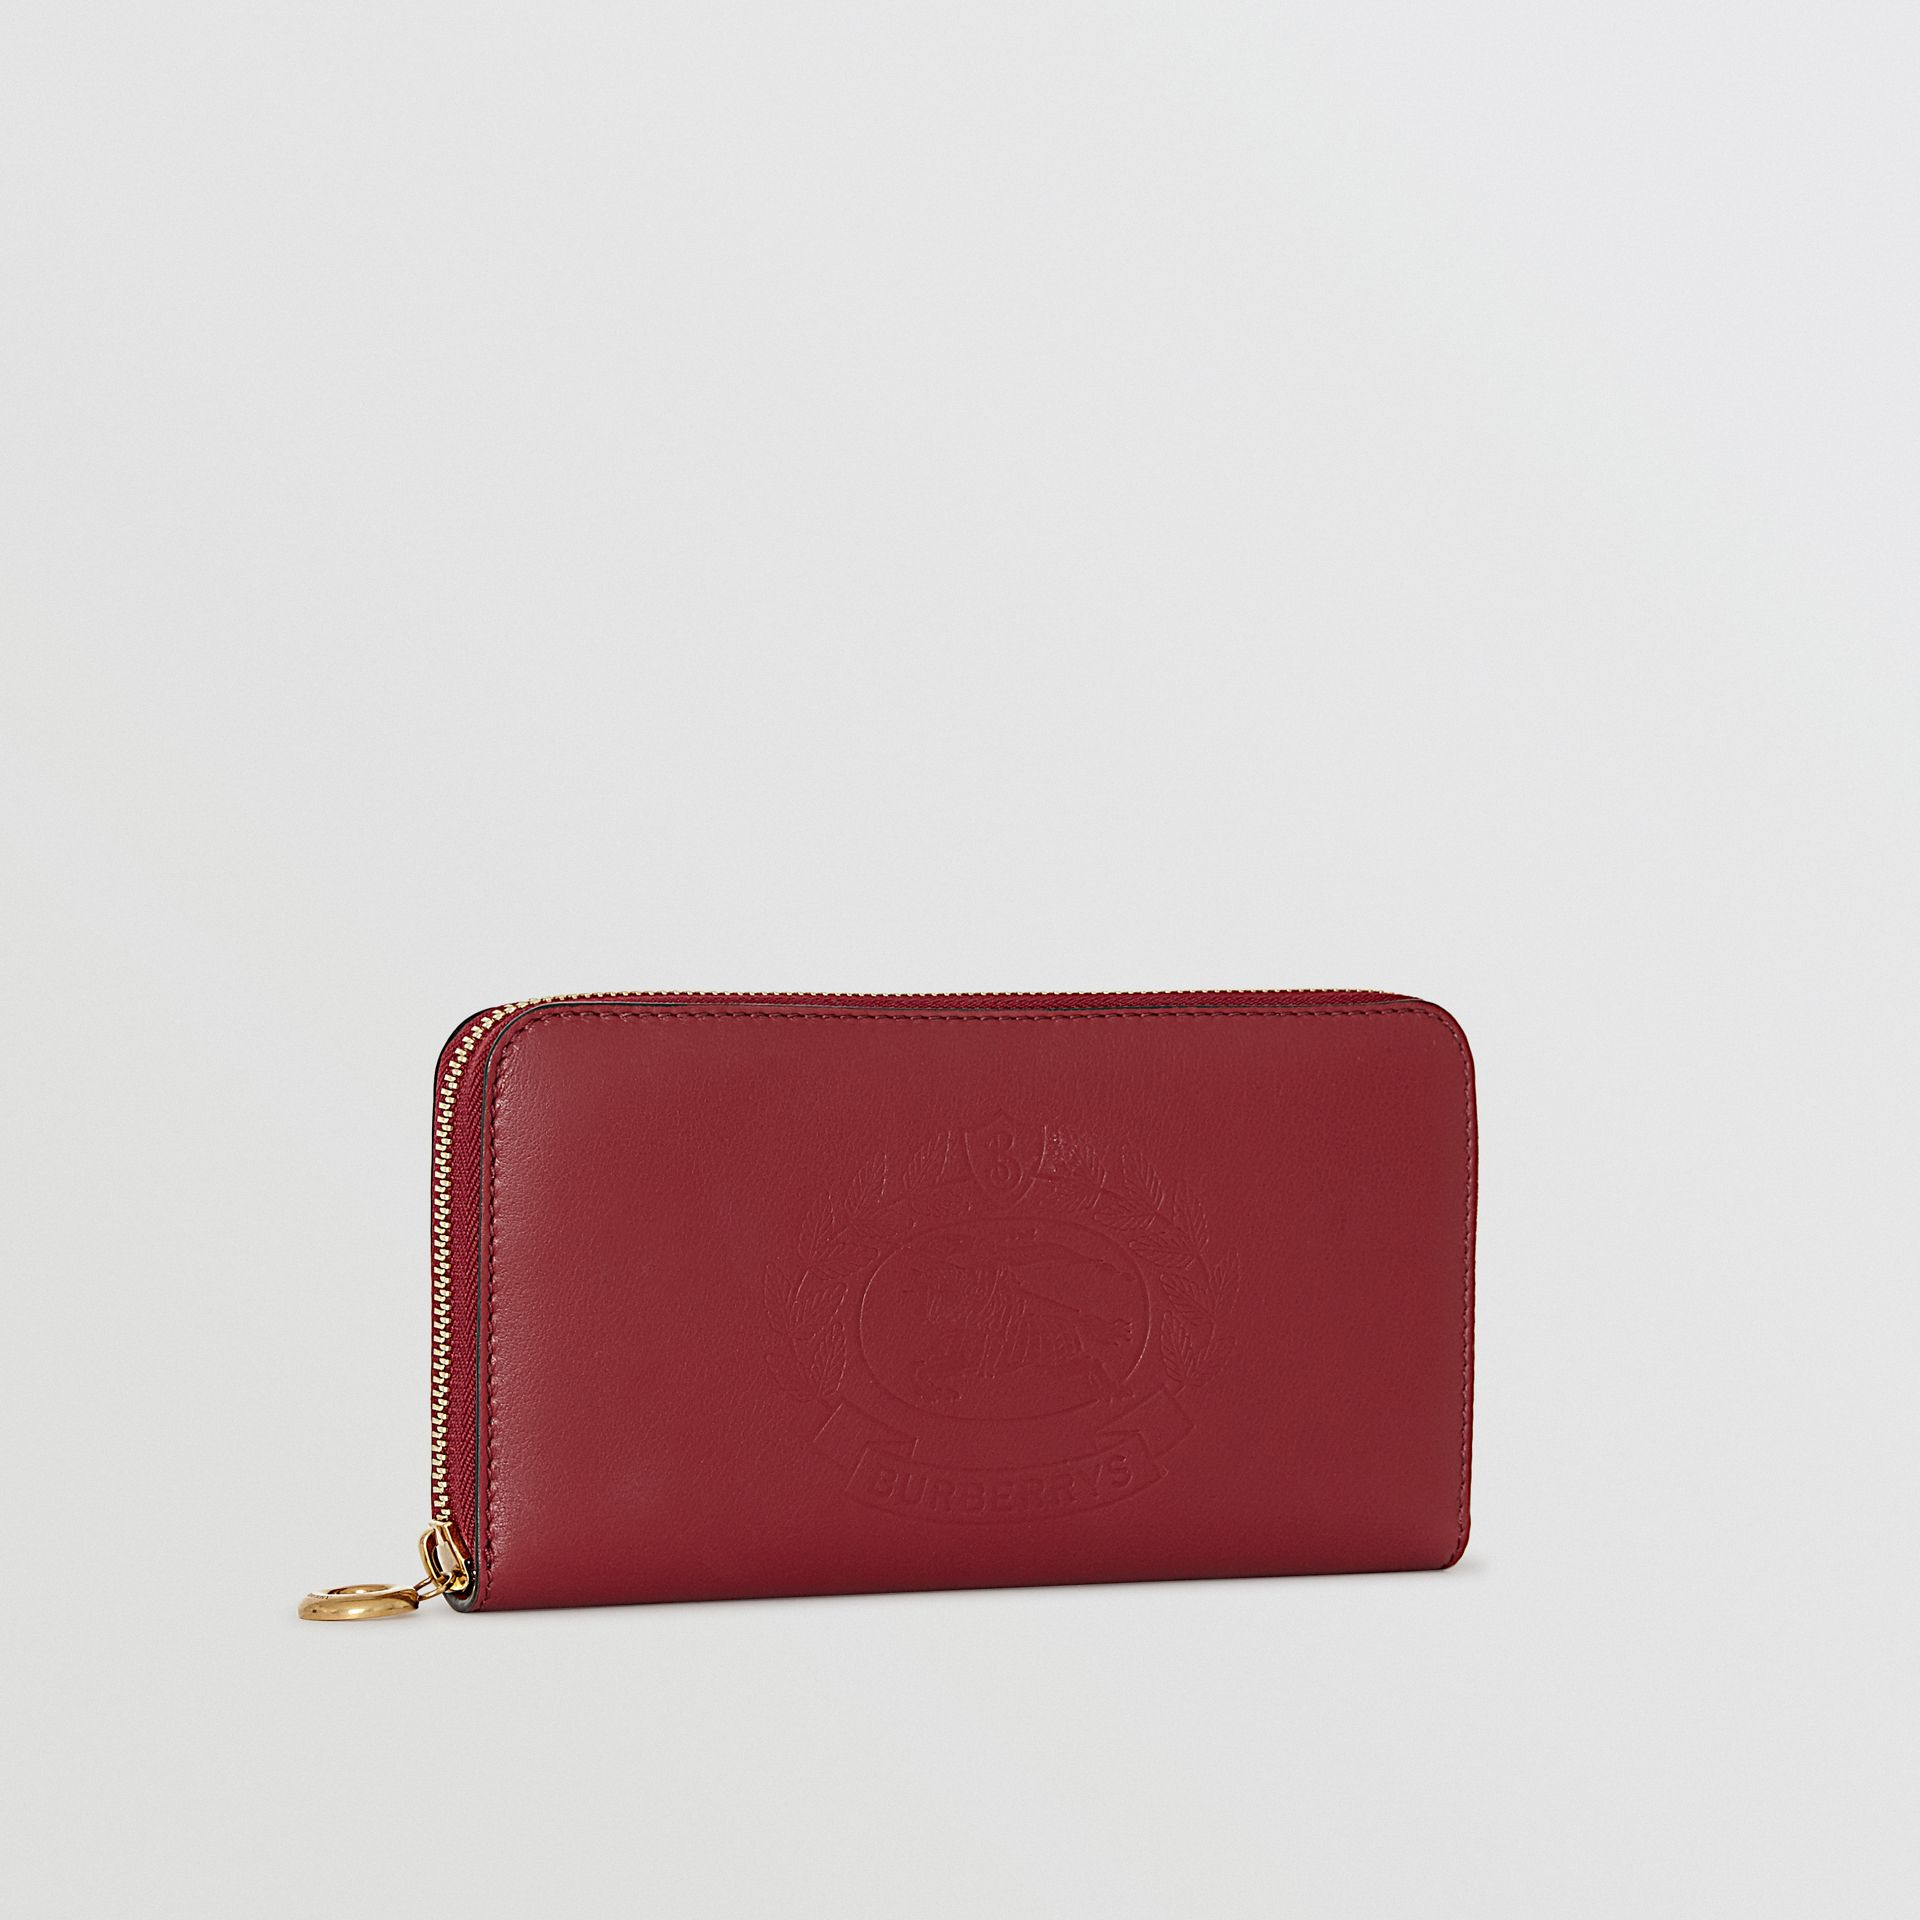 Embossed Crest Two-tone Leather Ziparound Wallet in Crimson - Women | Burberry Canada - gallery image 3